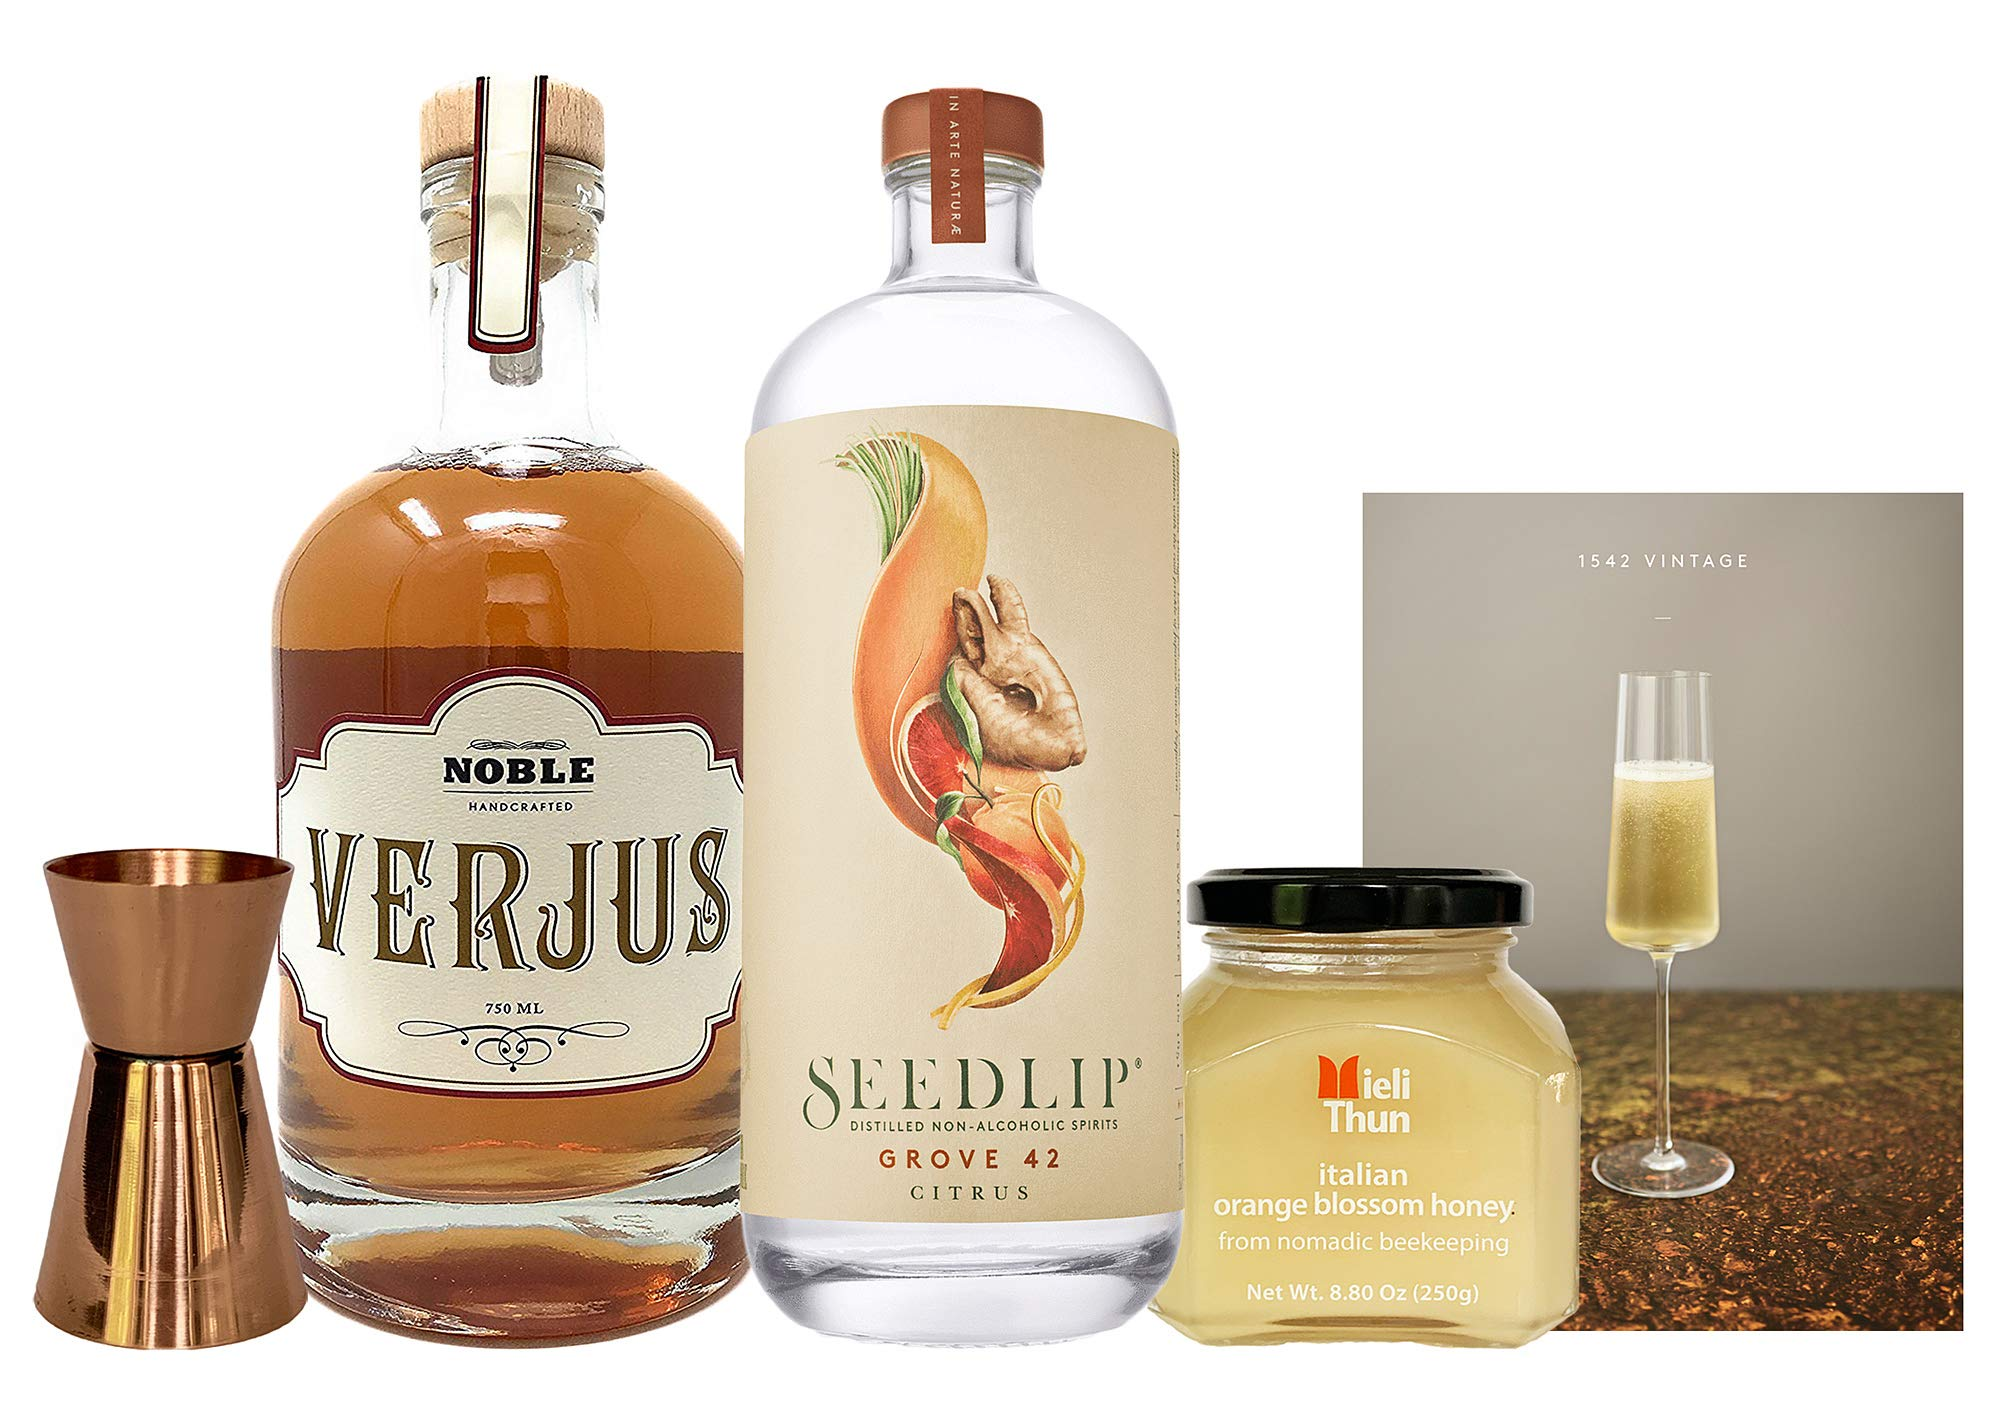 Seedlip Grove 1542 Vintage Bundle (5 Items) by The Curated Pantry (Image #1)